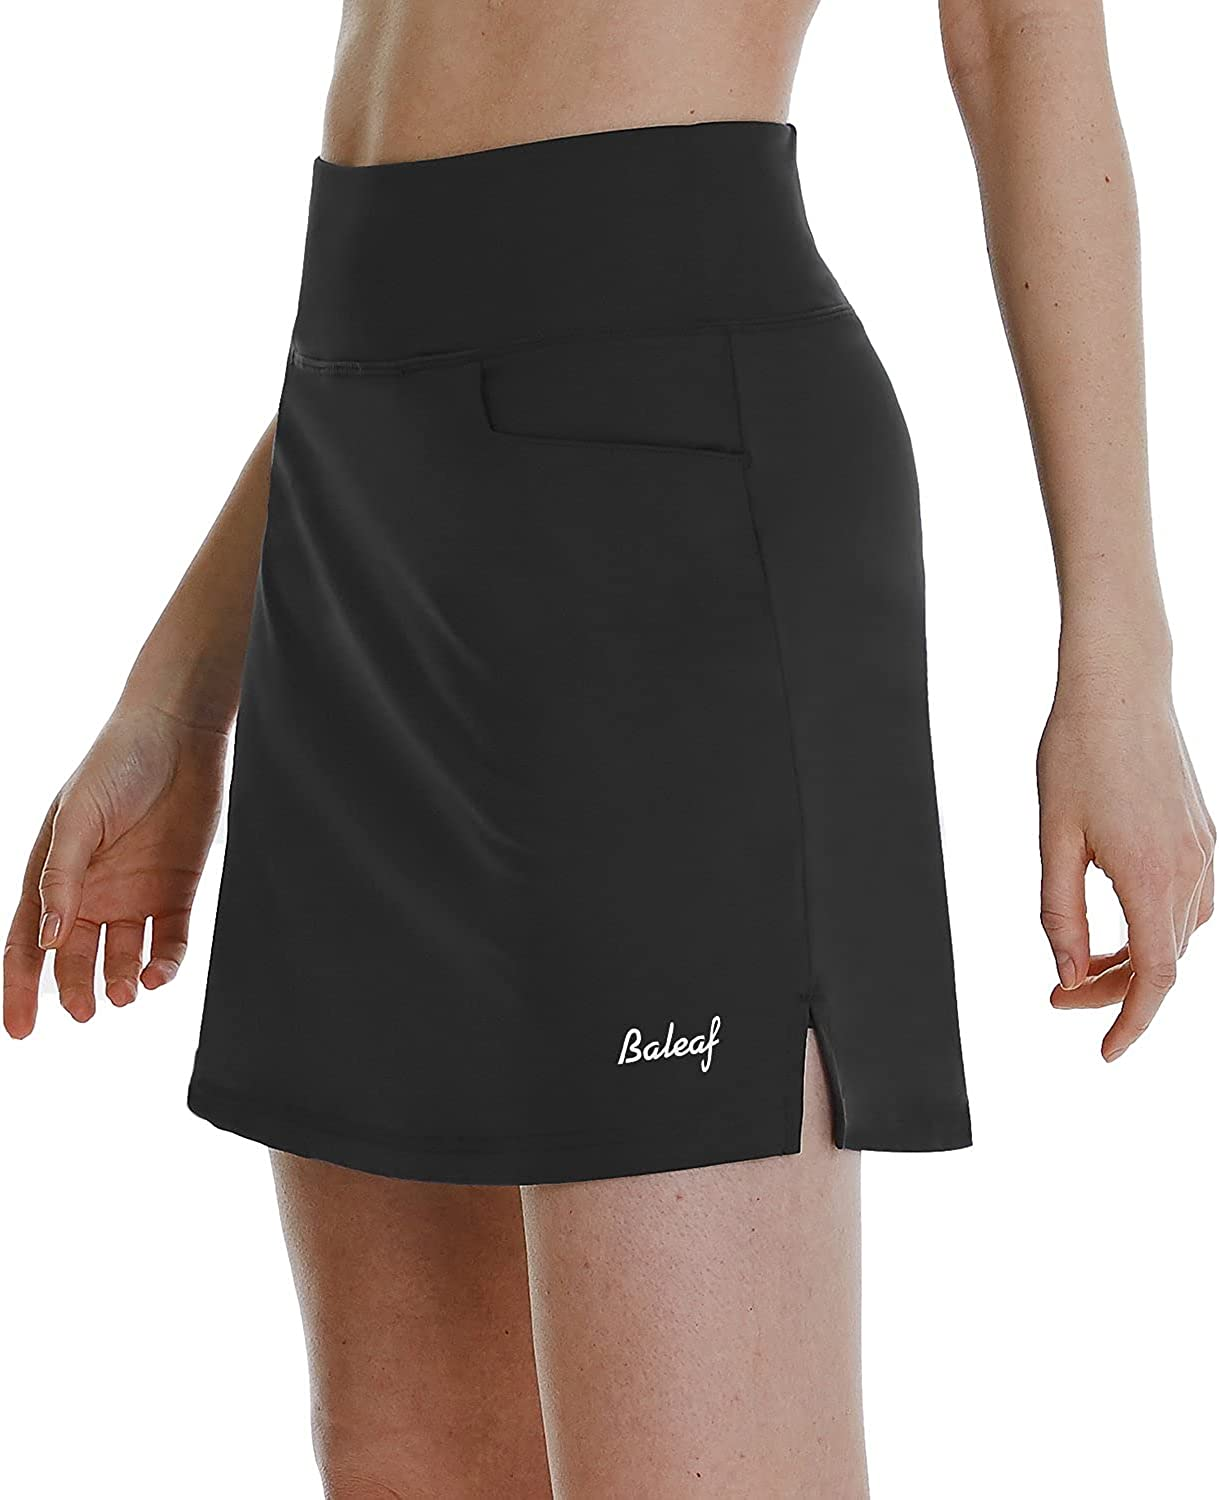 Animer and price revision BALEAF Women's High Waisted Ranking TOP16 Golf Running Tennis Athletic Skirts